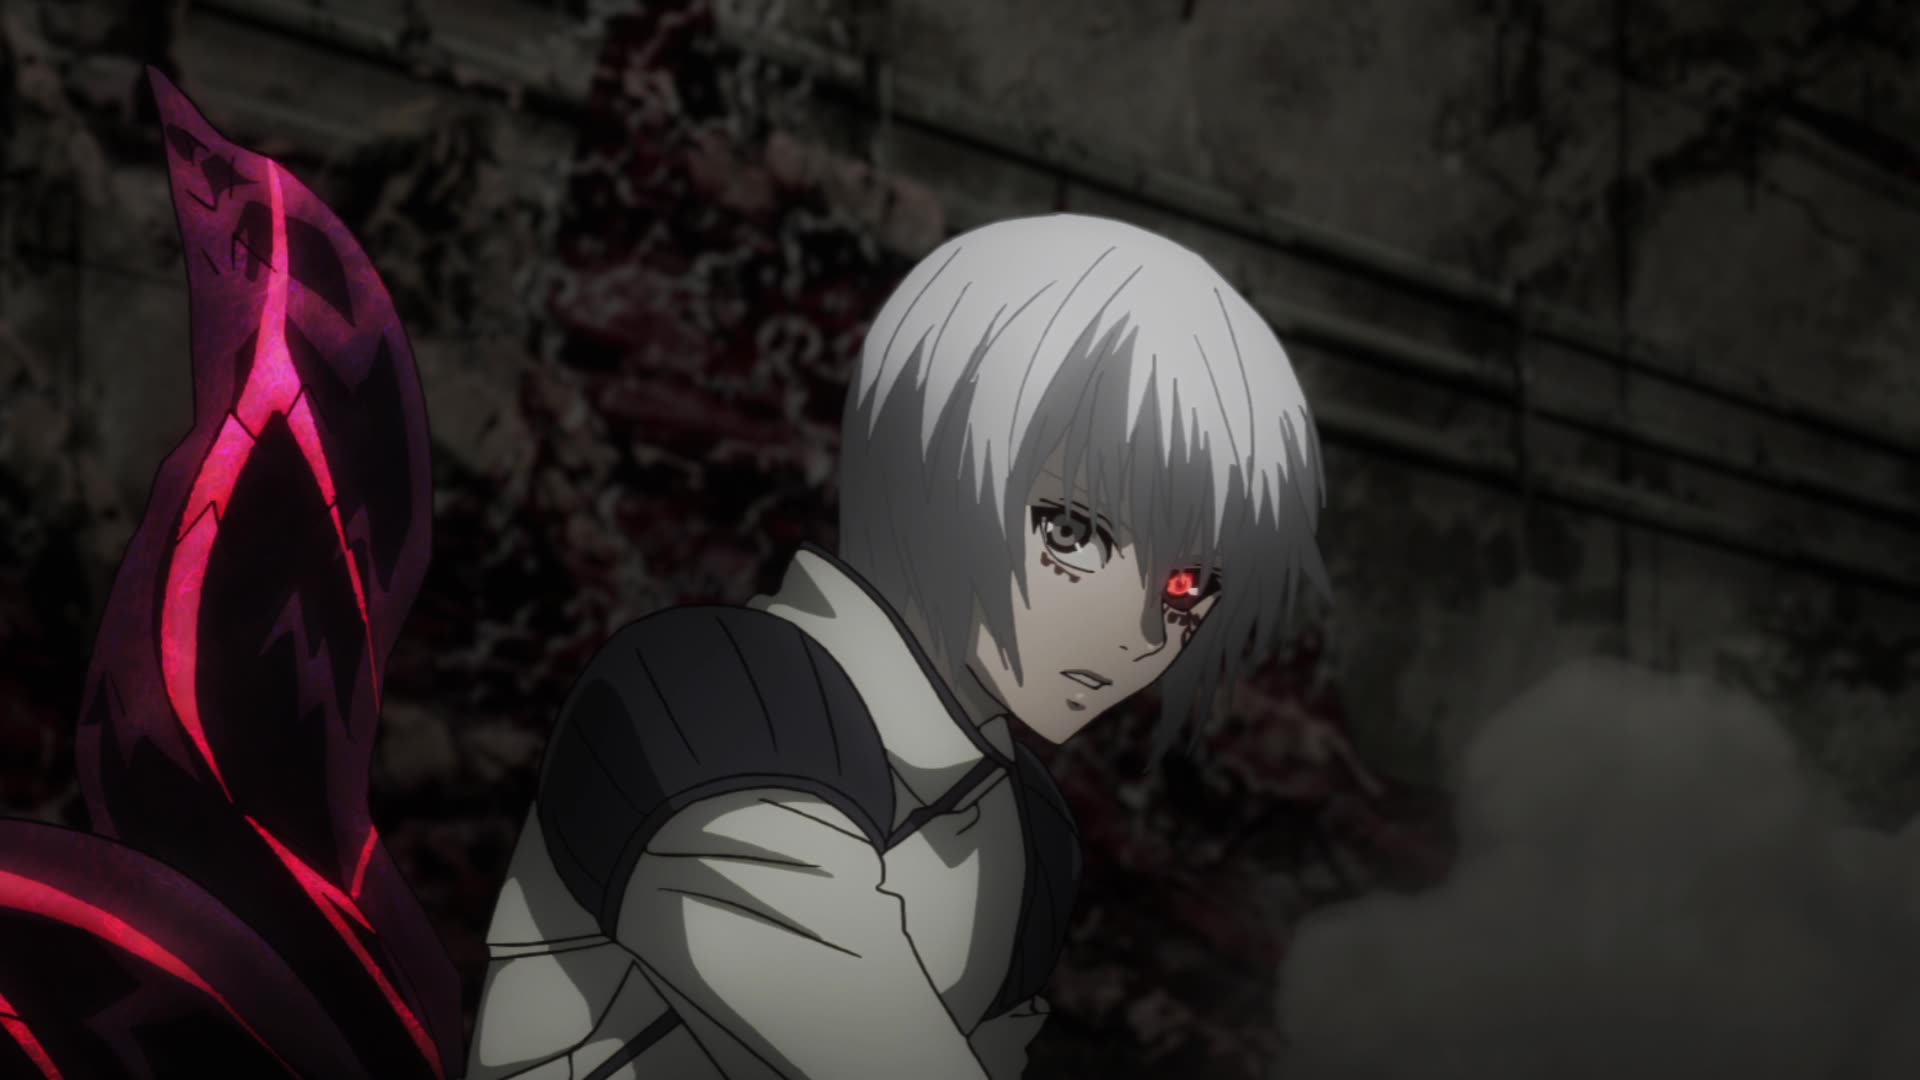 Tokyo Ghoul: re Episode 24, The Final Episode, - Watch on